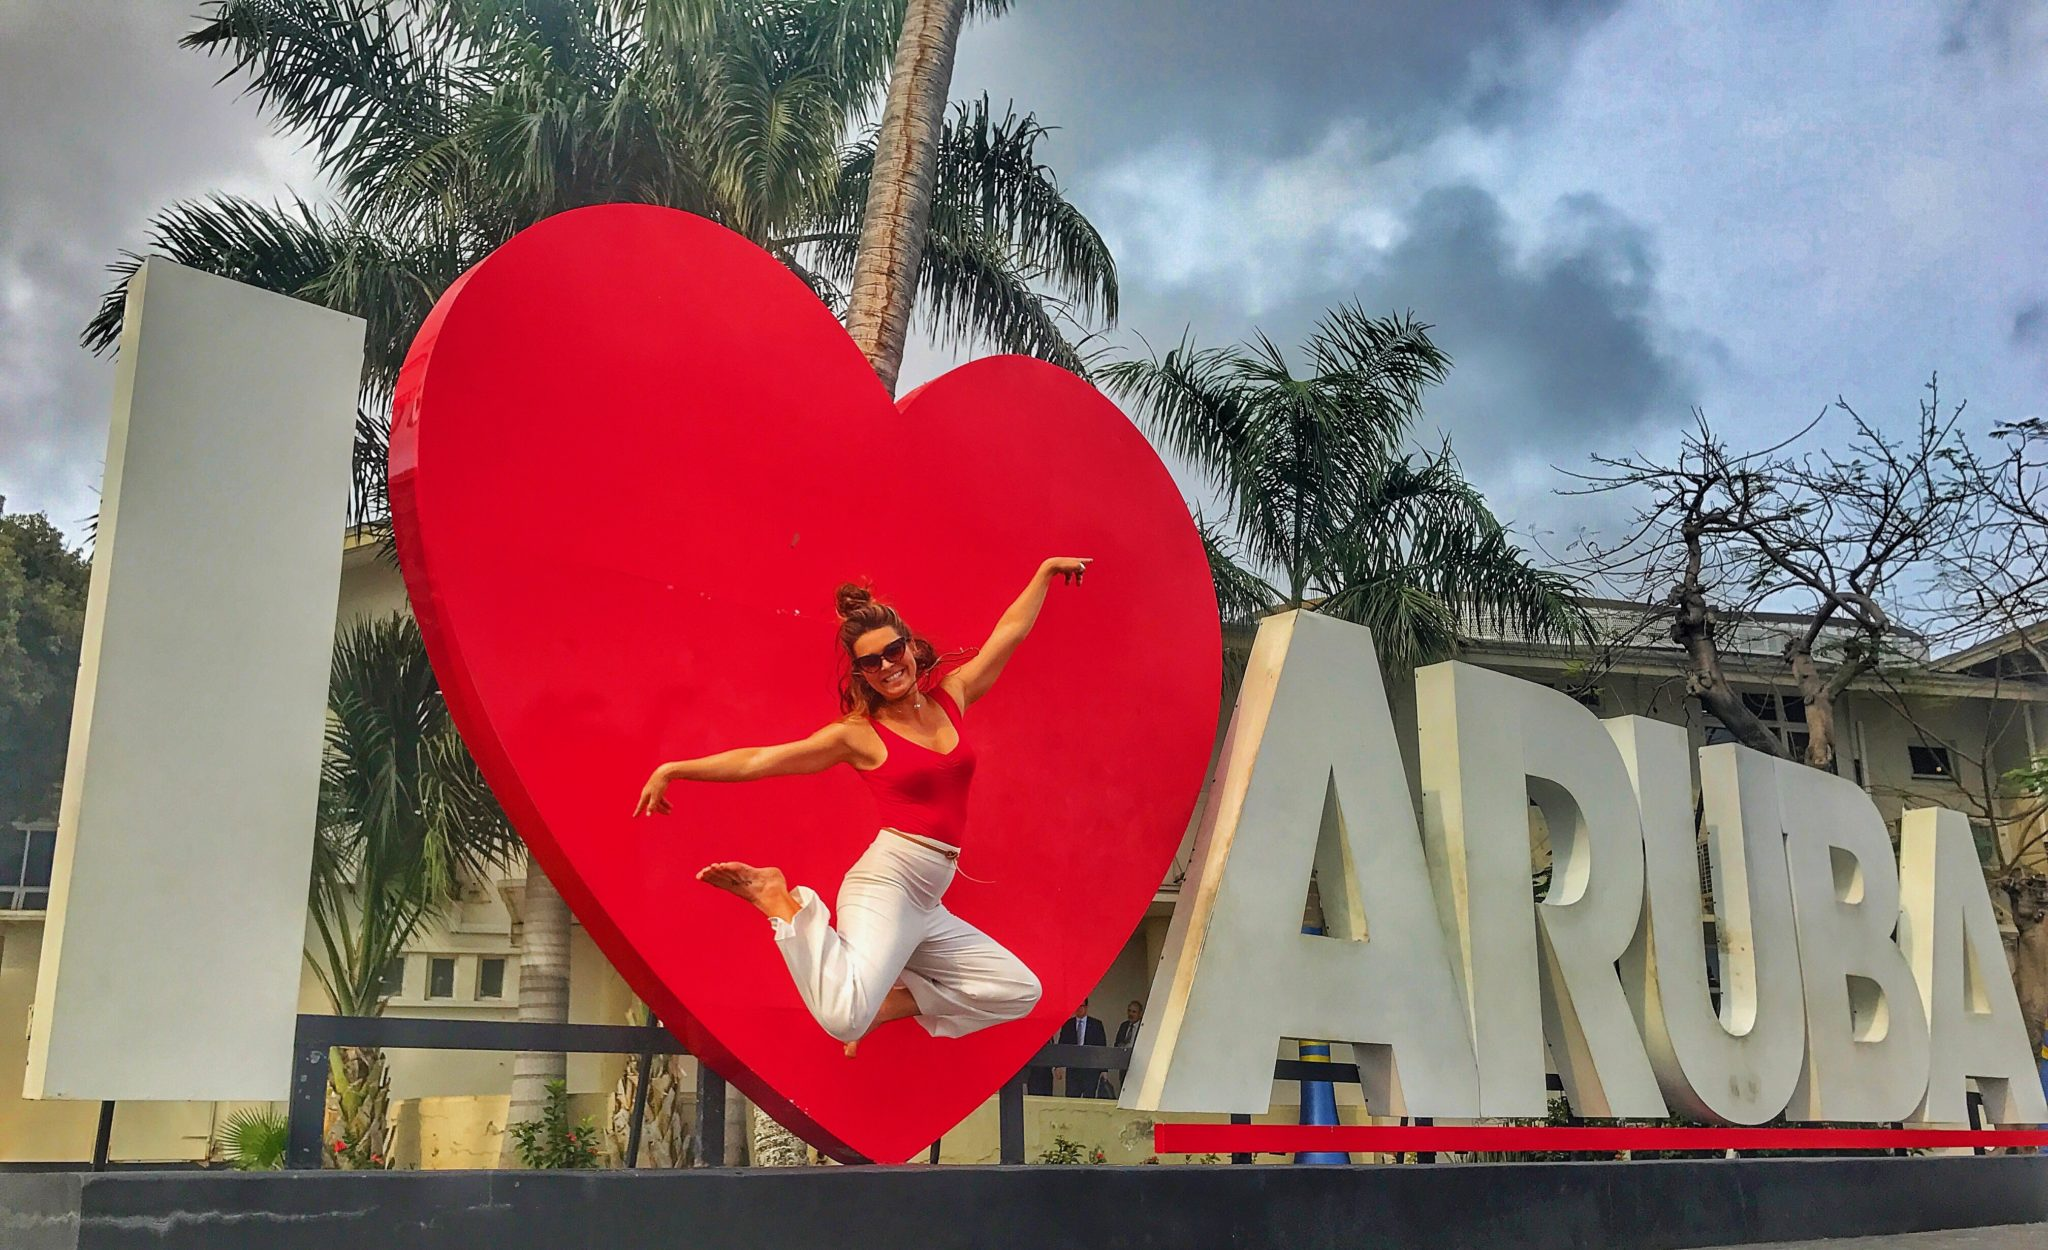 woman jumping at the I heart Aruba sign